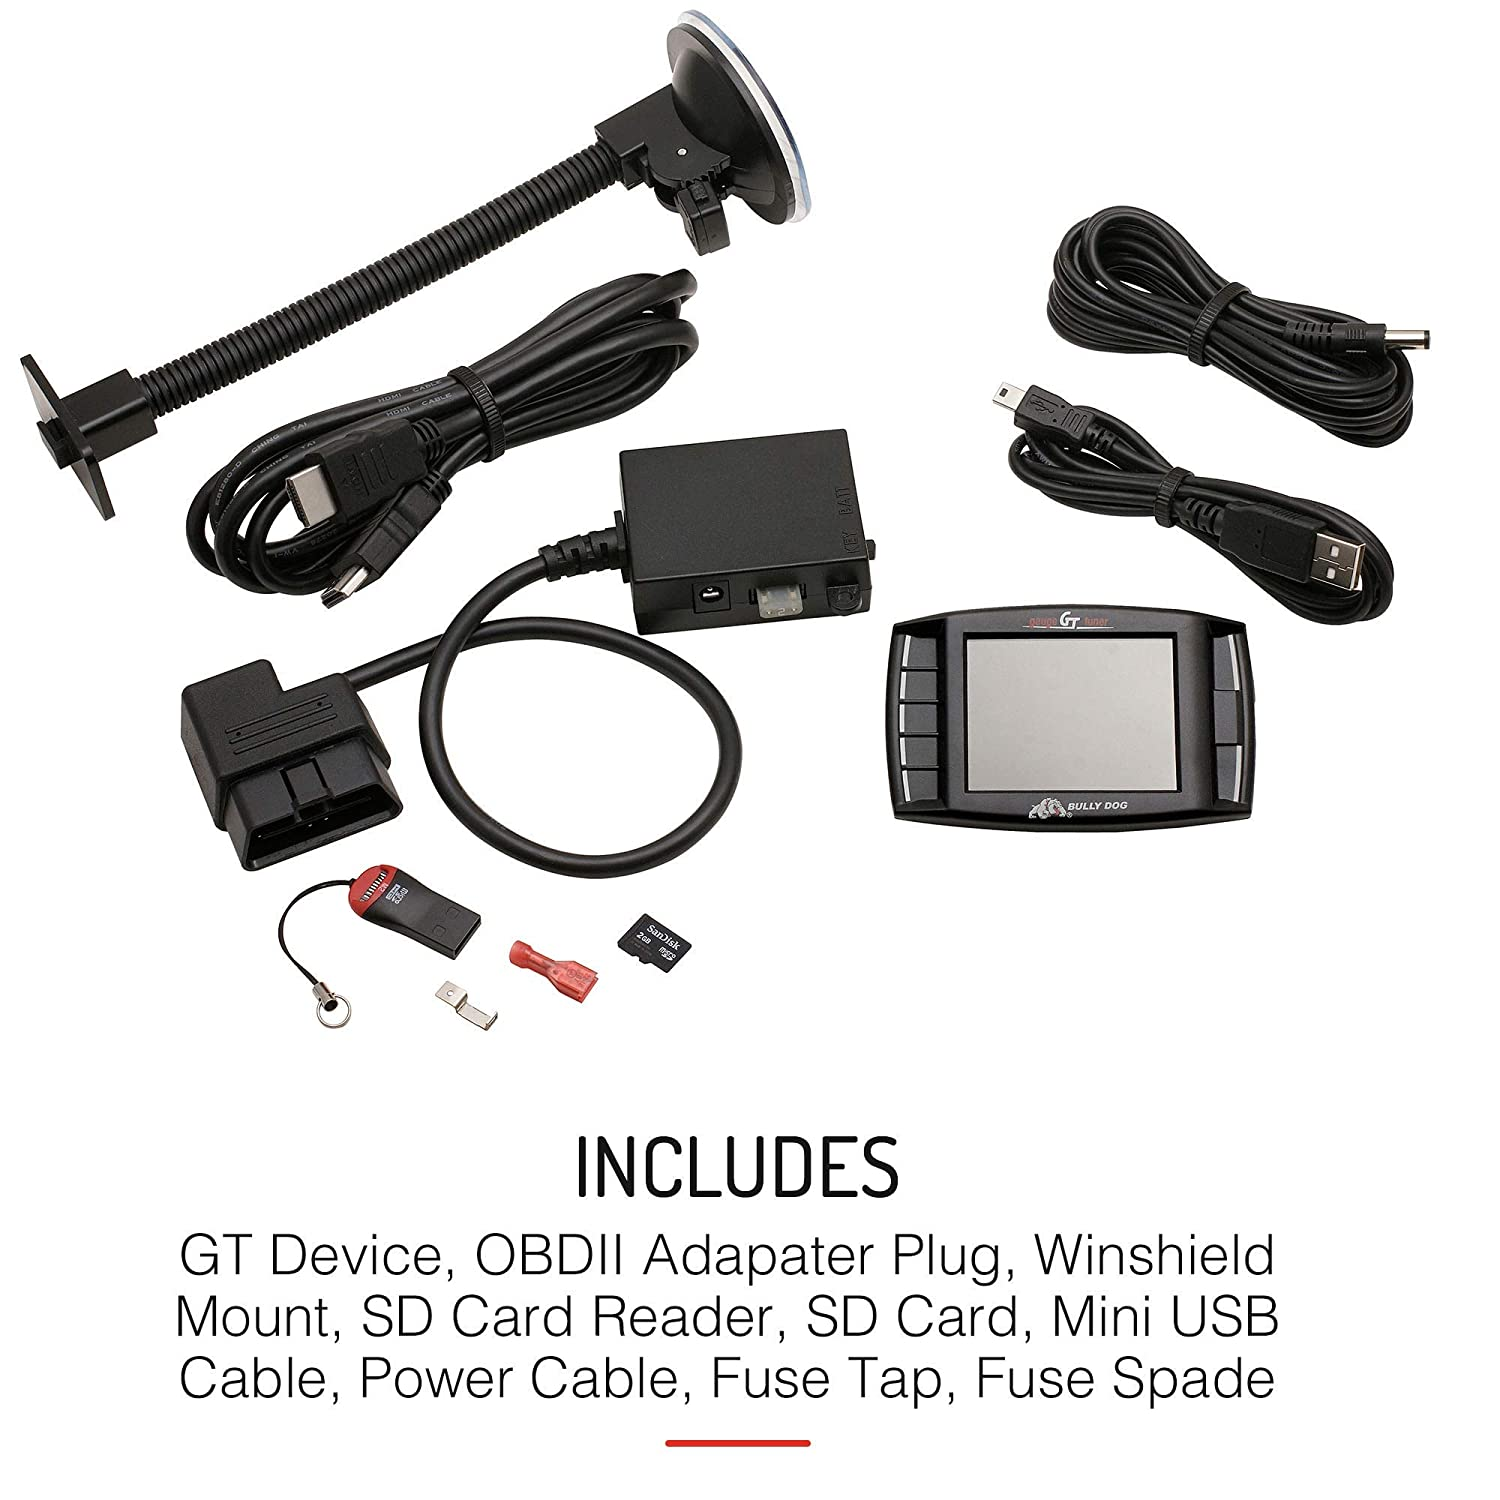 Bully Dog 40420 Gt Platinum Diesel Diagnostic And Electronic Watchdog Kit Quality Electronics Store Kingston Ontario Performance Tuner With 4 Preloaded Tunes Automotive